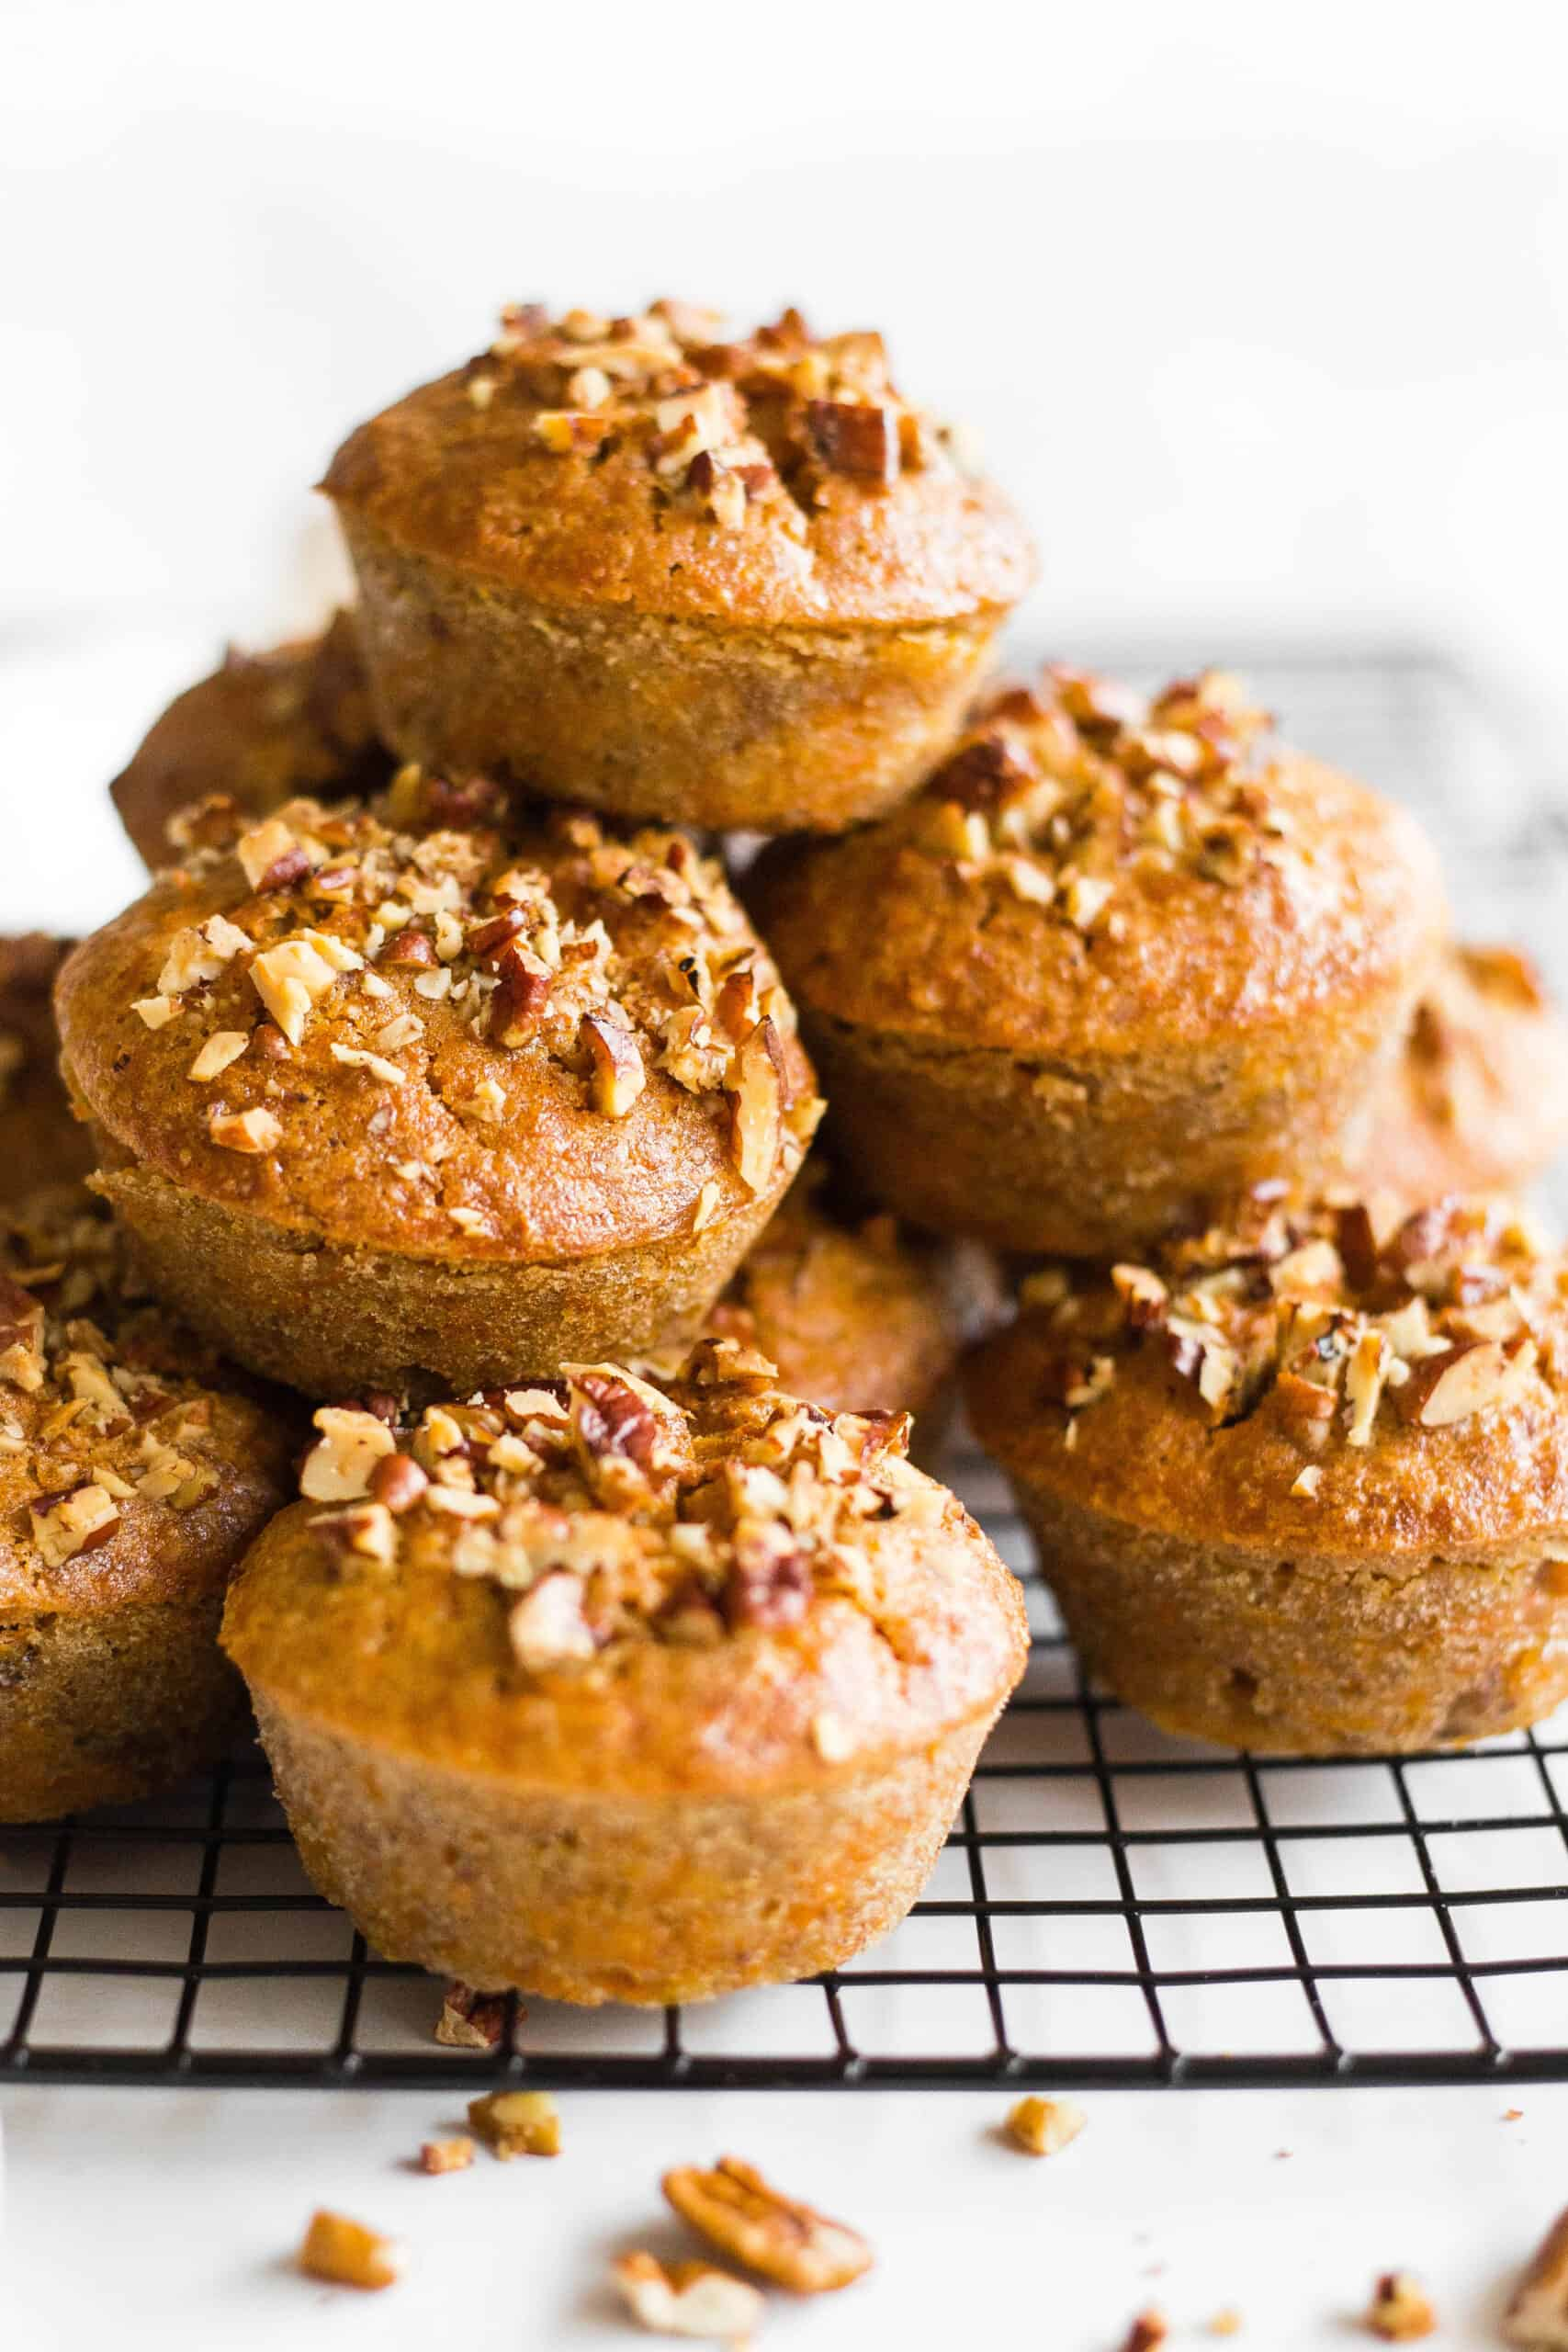 A stack of gluten-free carrot muffins on a cooling rack.